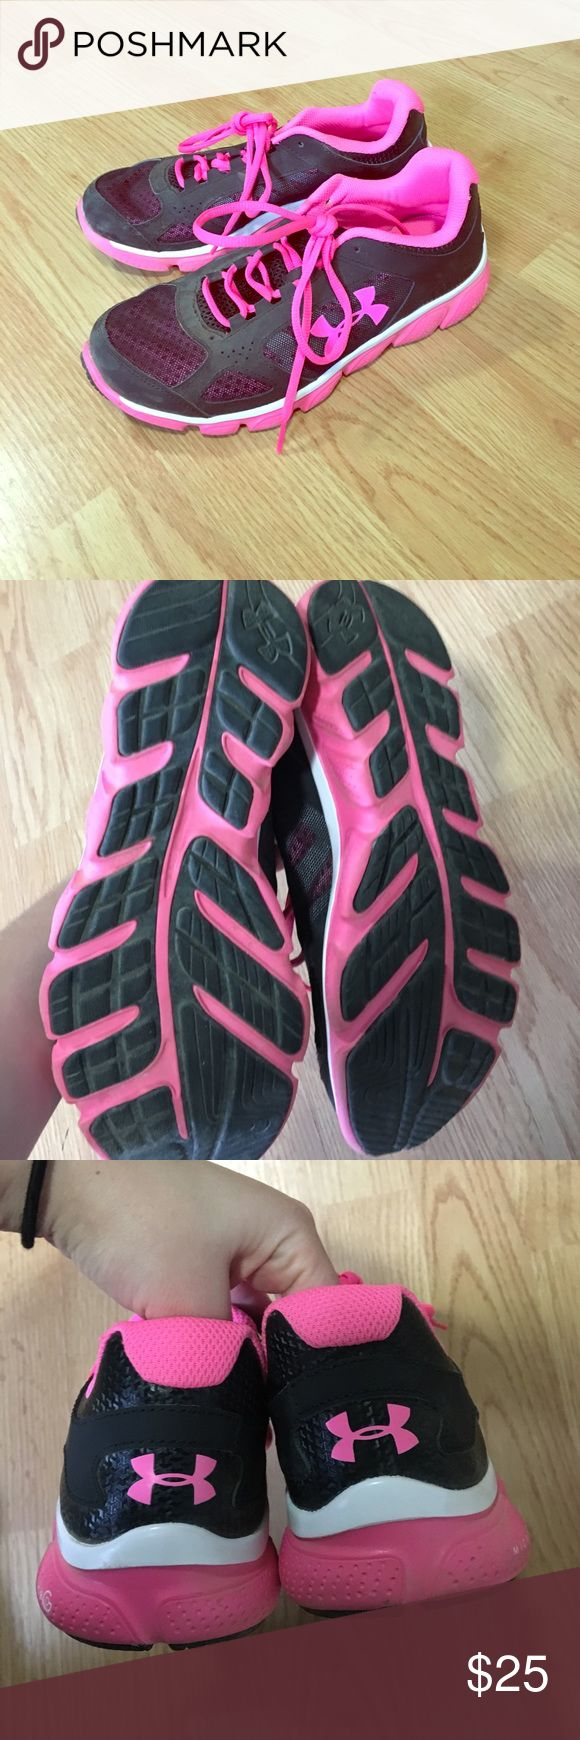 💕Under Armour tennis shoes!💕 Perfect condition black and hot pink under armour tennis shoes! The size is 6 youth but fits the same as a women's 8! New without tags. Smoke and pet free home. Only worn to try on at store! Under Armour Shoes Athletic Shoes